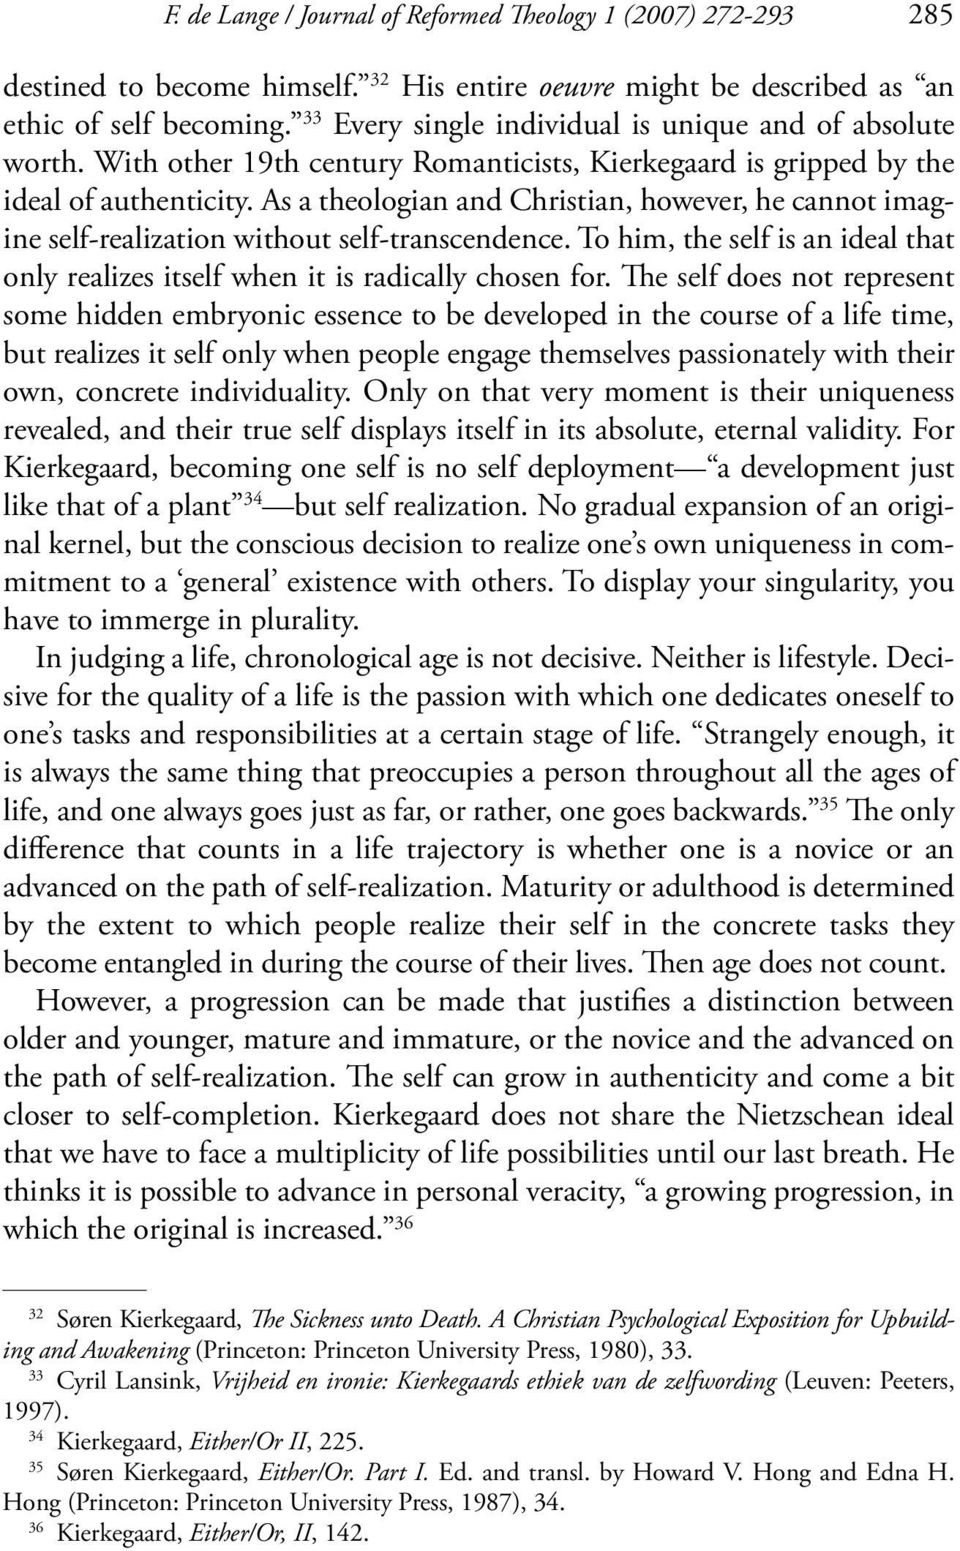 As a theologian and Christian, however, he cannot imagine self-realization without self-transcendence. To him, the self is an ideal that only realizes itself when it is radically chosen for.